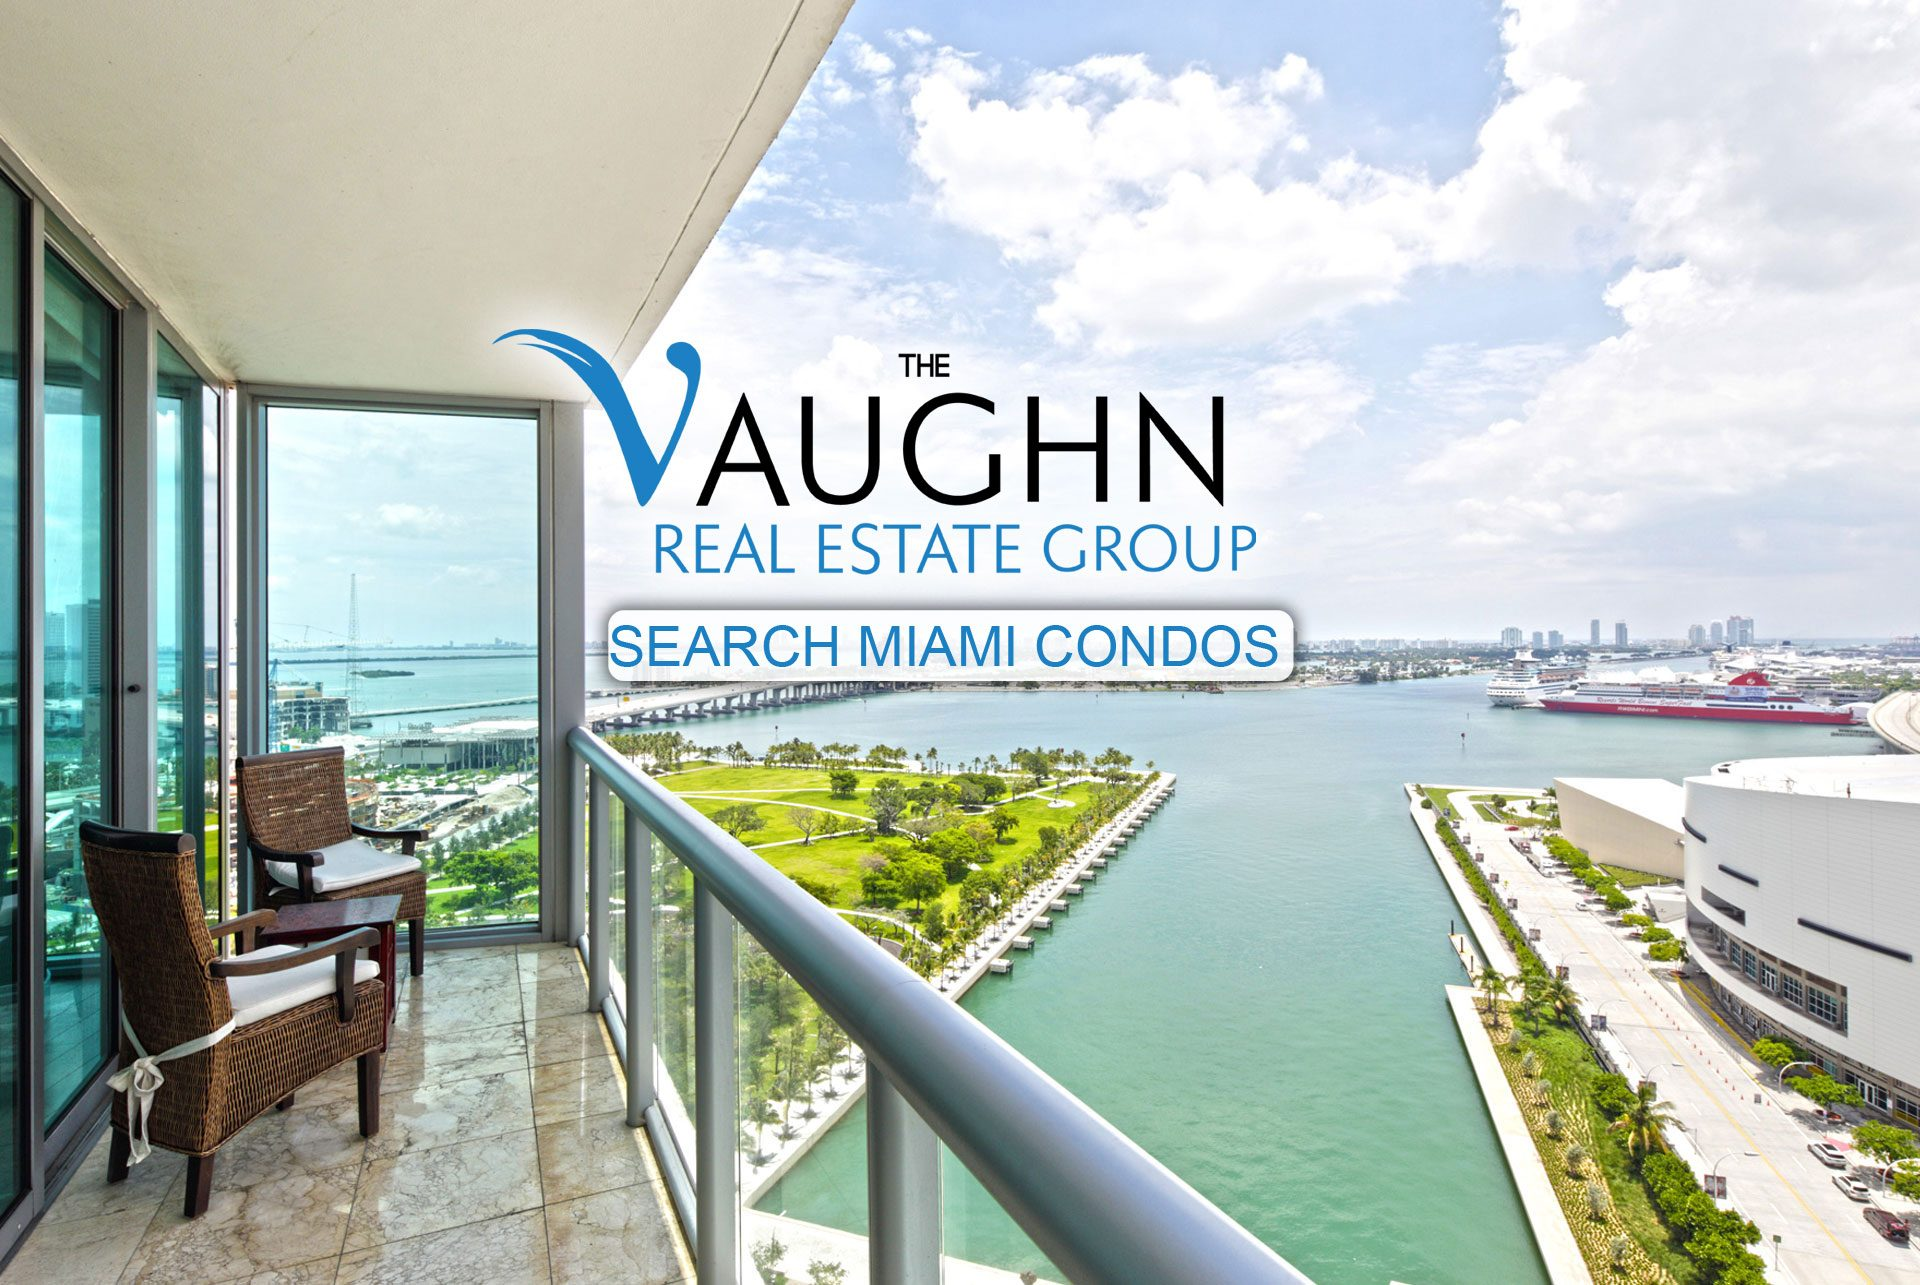 Search Miami Condos right now in Miami Beach, Bal Harbour.